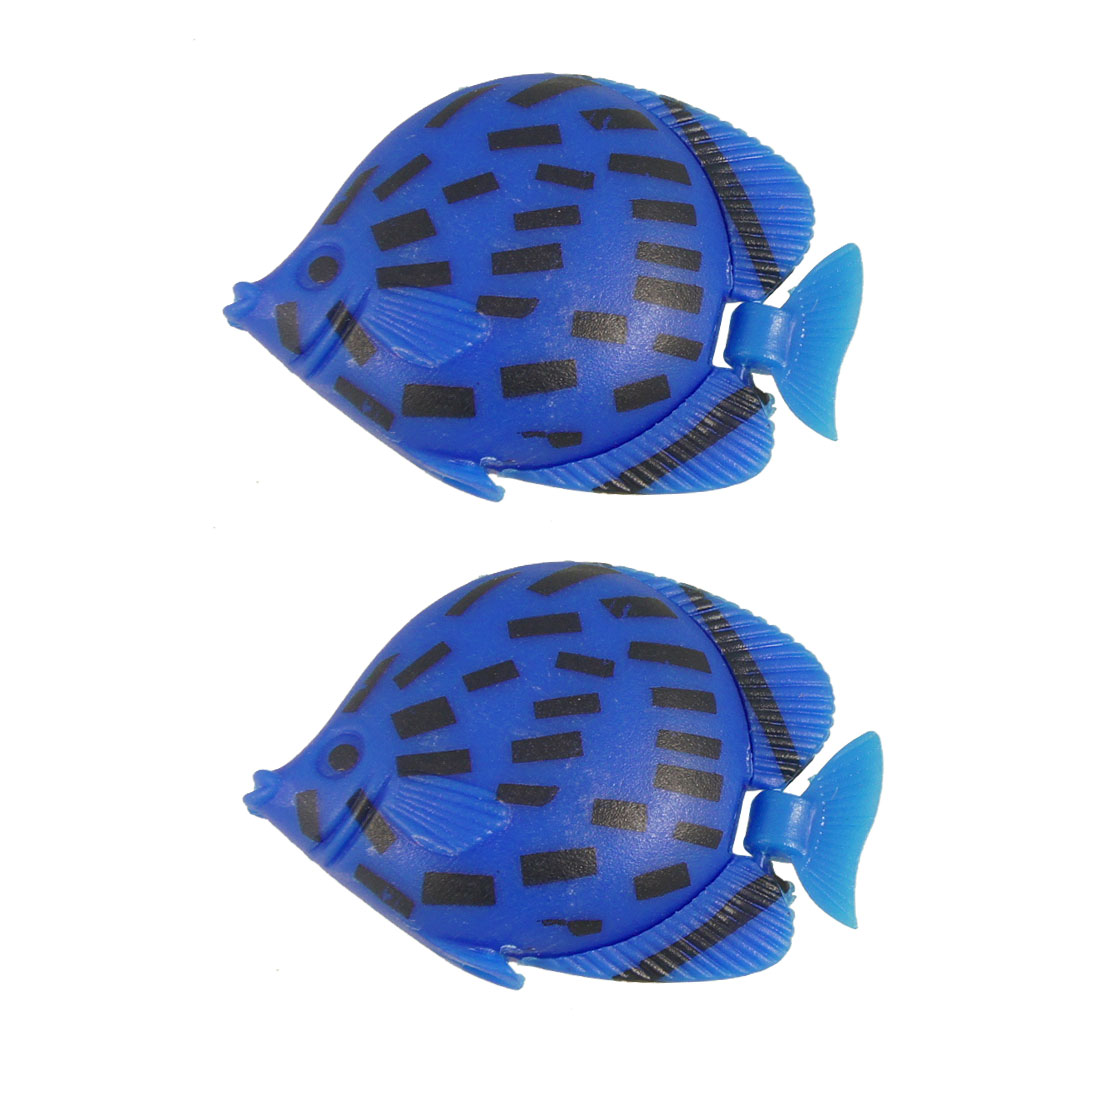 2 Pcs Plastic Swing Tail Float Blue Black Artificial Fish Decoration